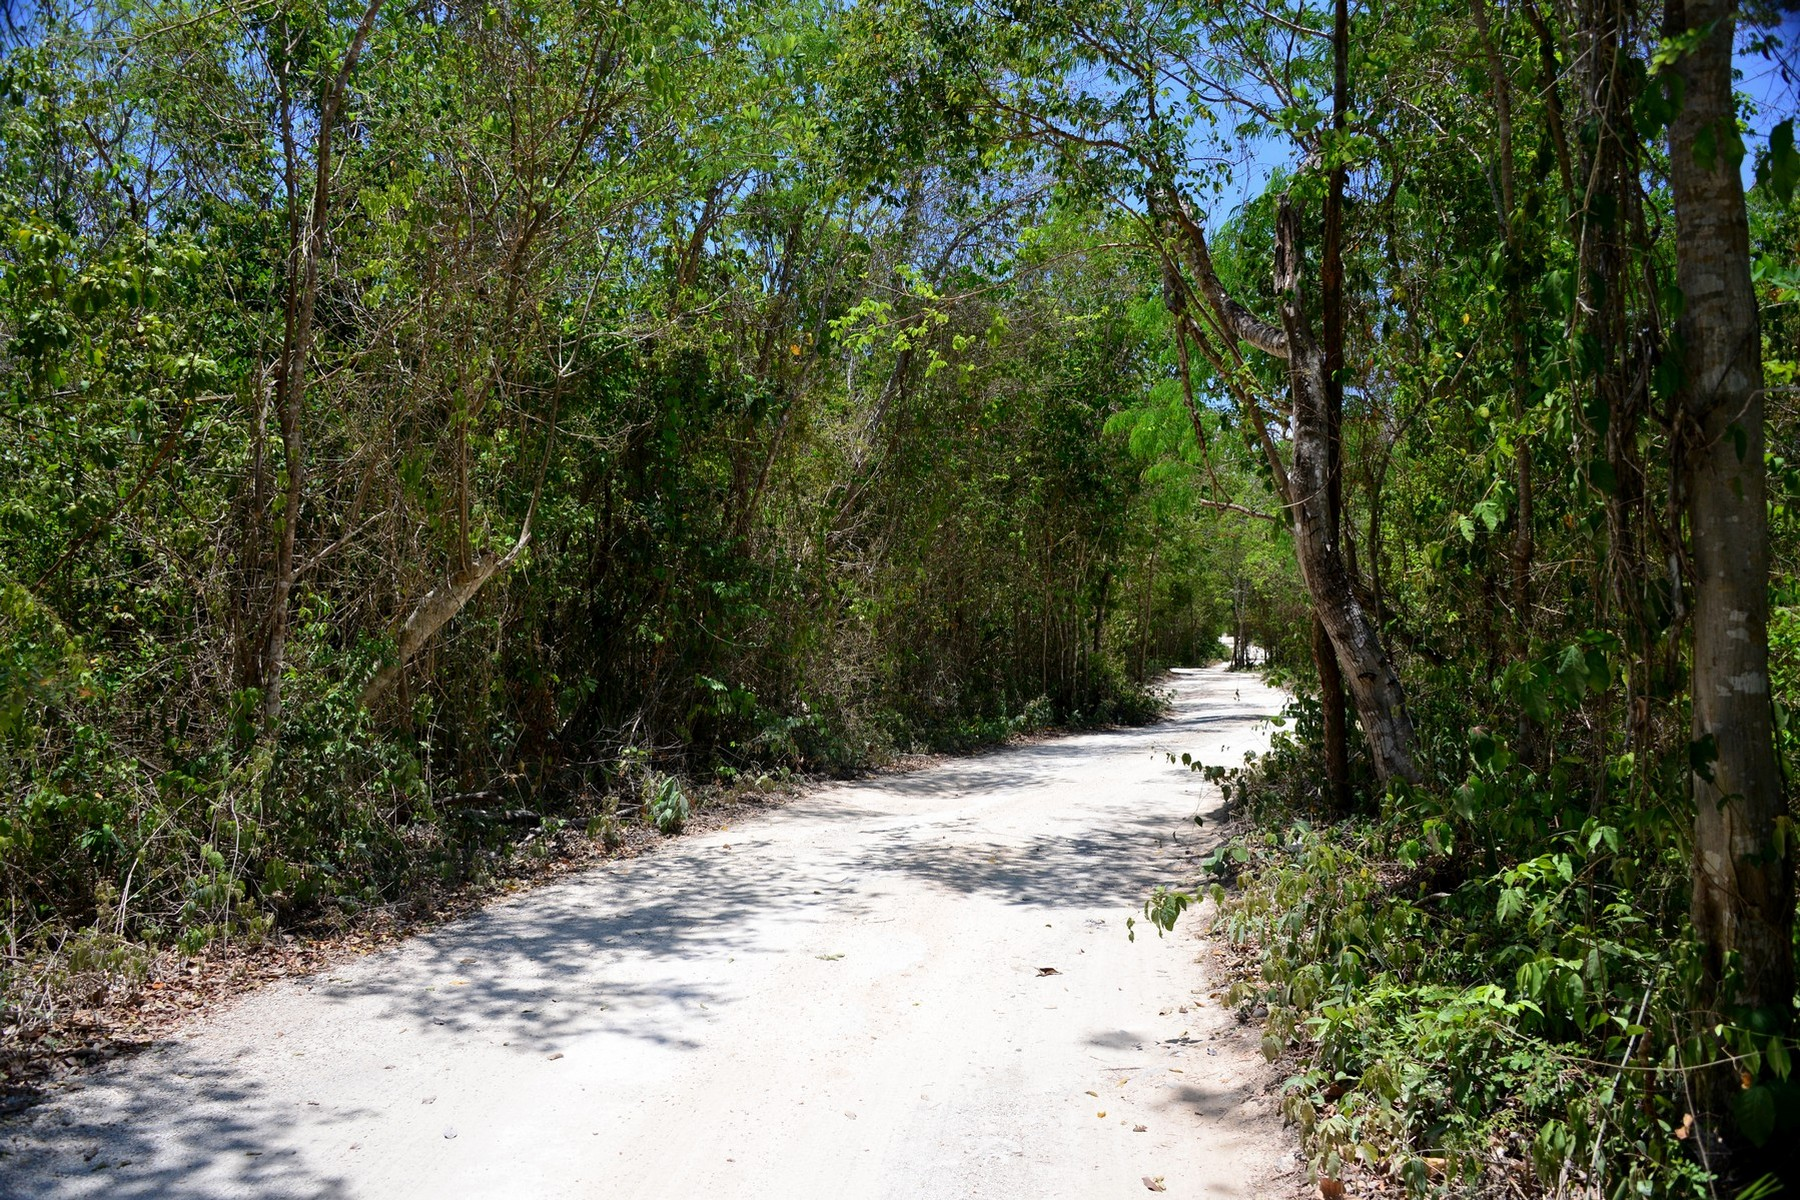 Land for Sale at LOTS 6 AND 7 8TH REGION LOTS 6 AND 7 8TH REGION Manzana 668 de la zona 8 Tulum, Quintana Roo 77760 Mexico